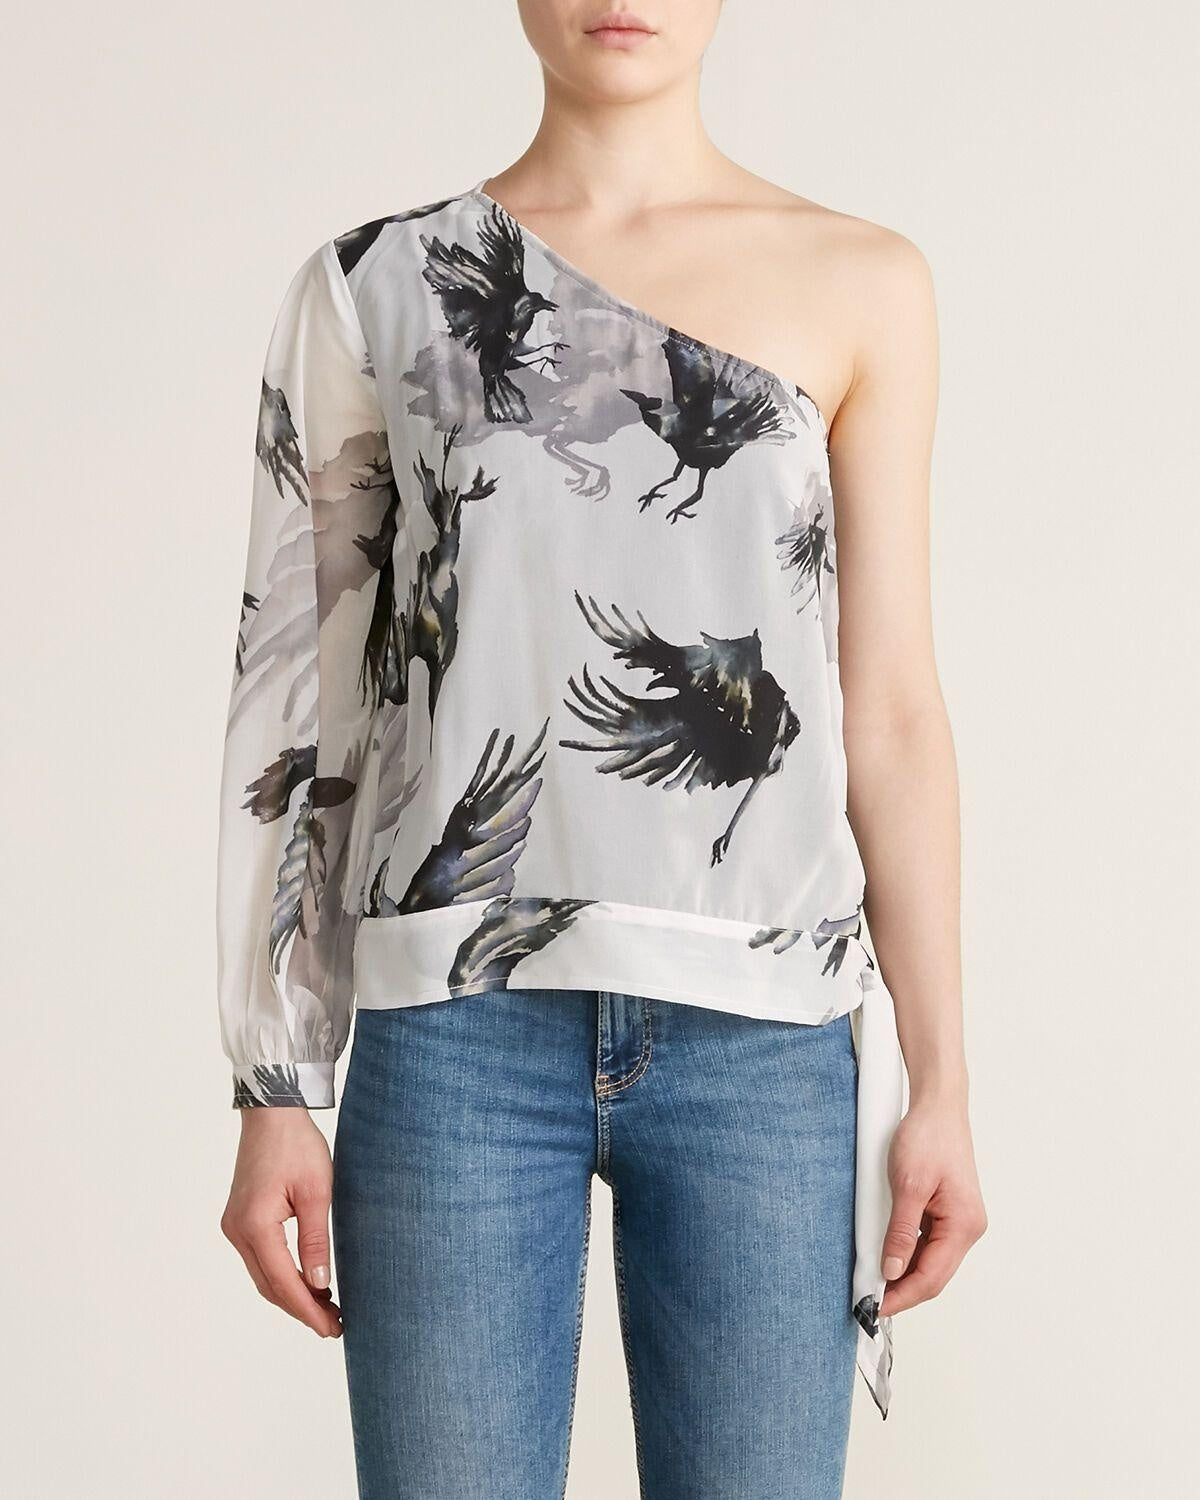 Religion Asymmetrical Chiffon Raven Print Top Large New!-Religion-Your Fashions For Less